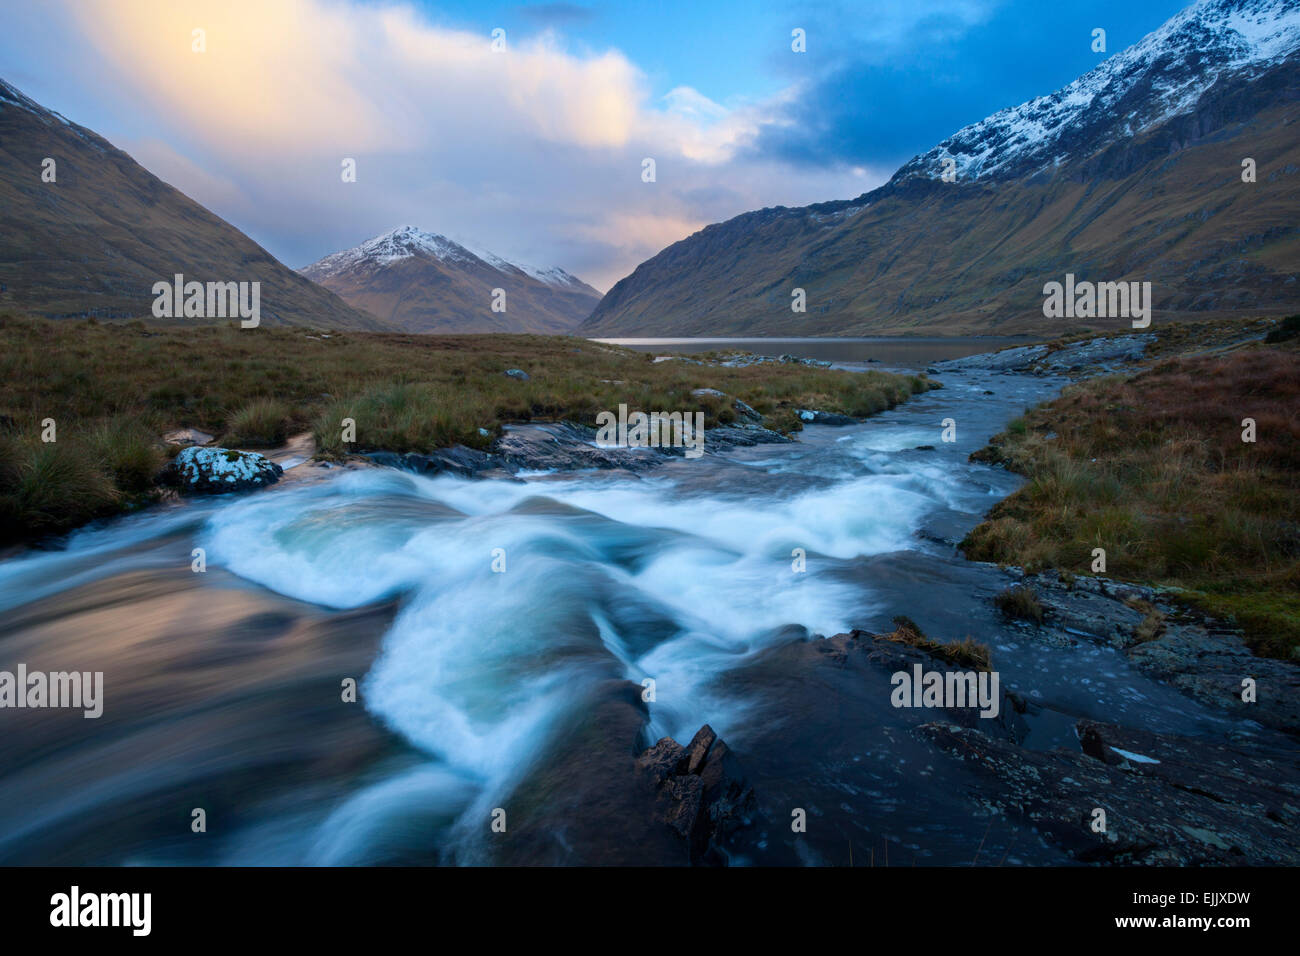 Winter-Sonnenuntergang am Glencullin Fluss und Doolough, County Mayo, Irland. Stockbild